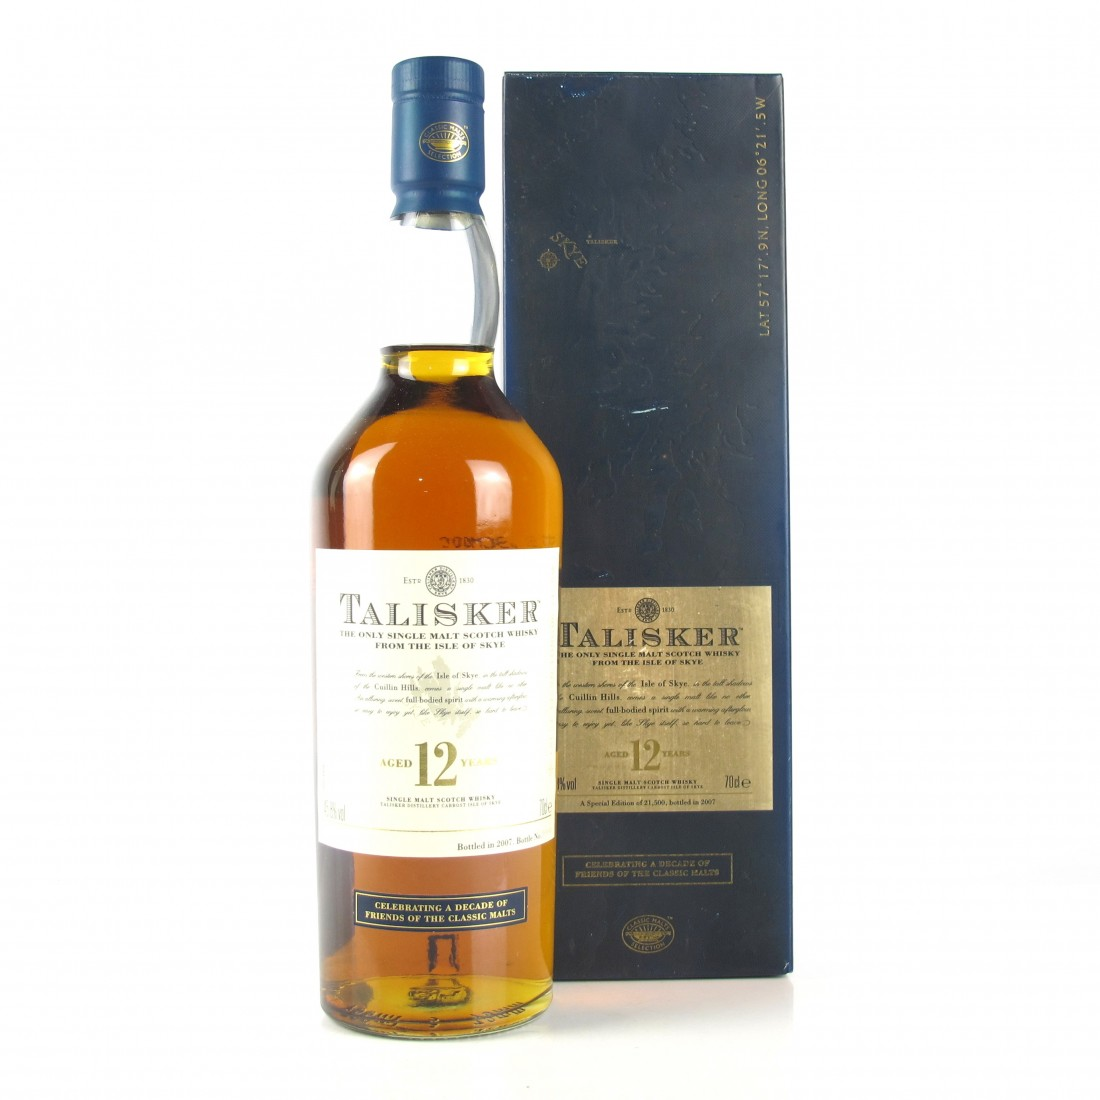 Talisker 12 Year Old A Decade of the Friends of the Classic Malts